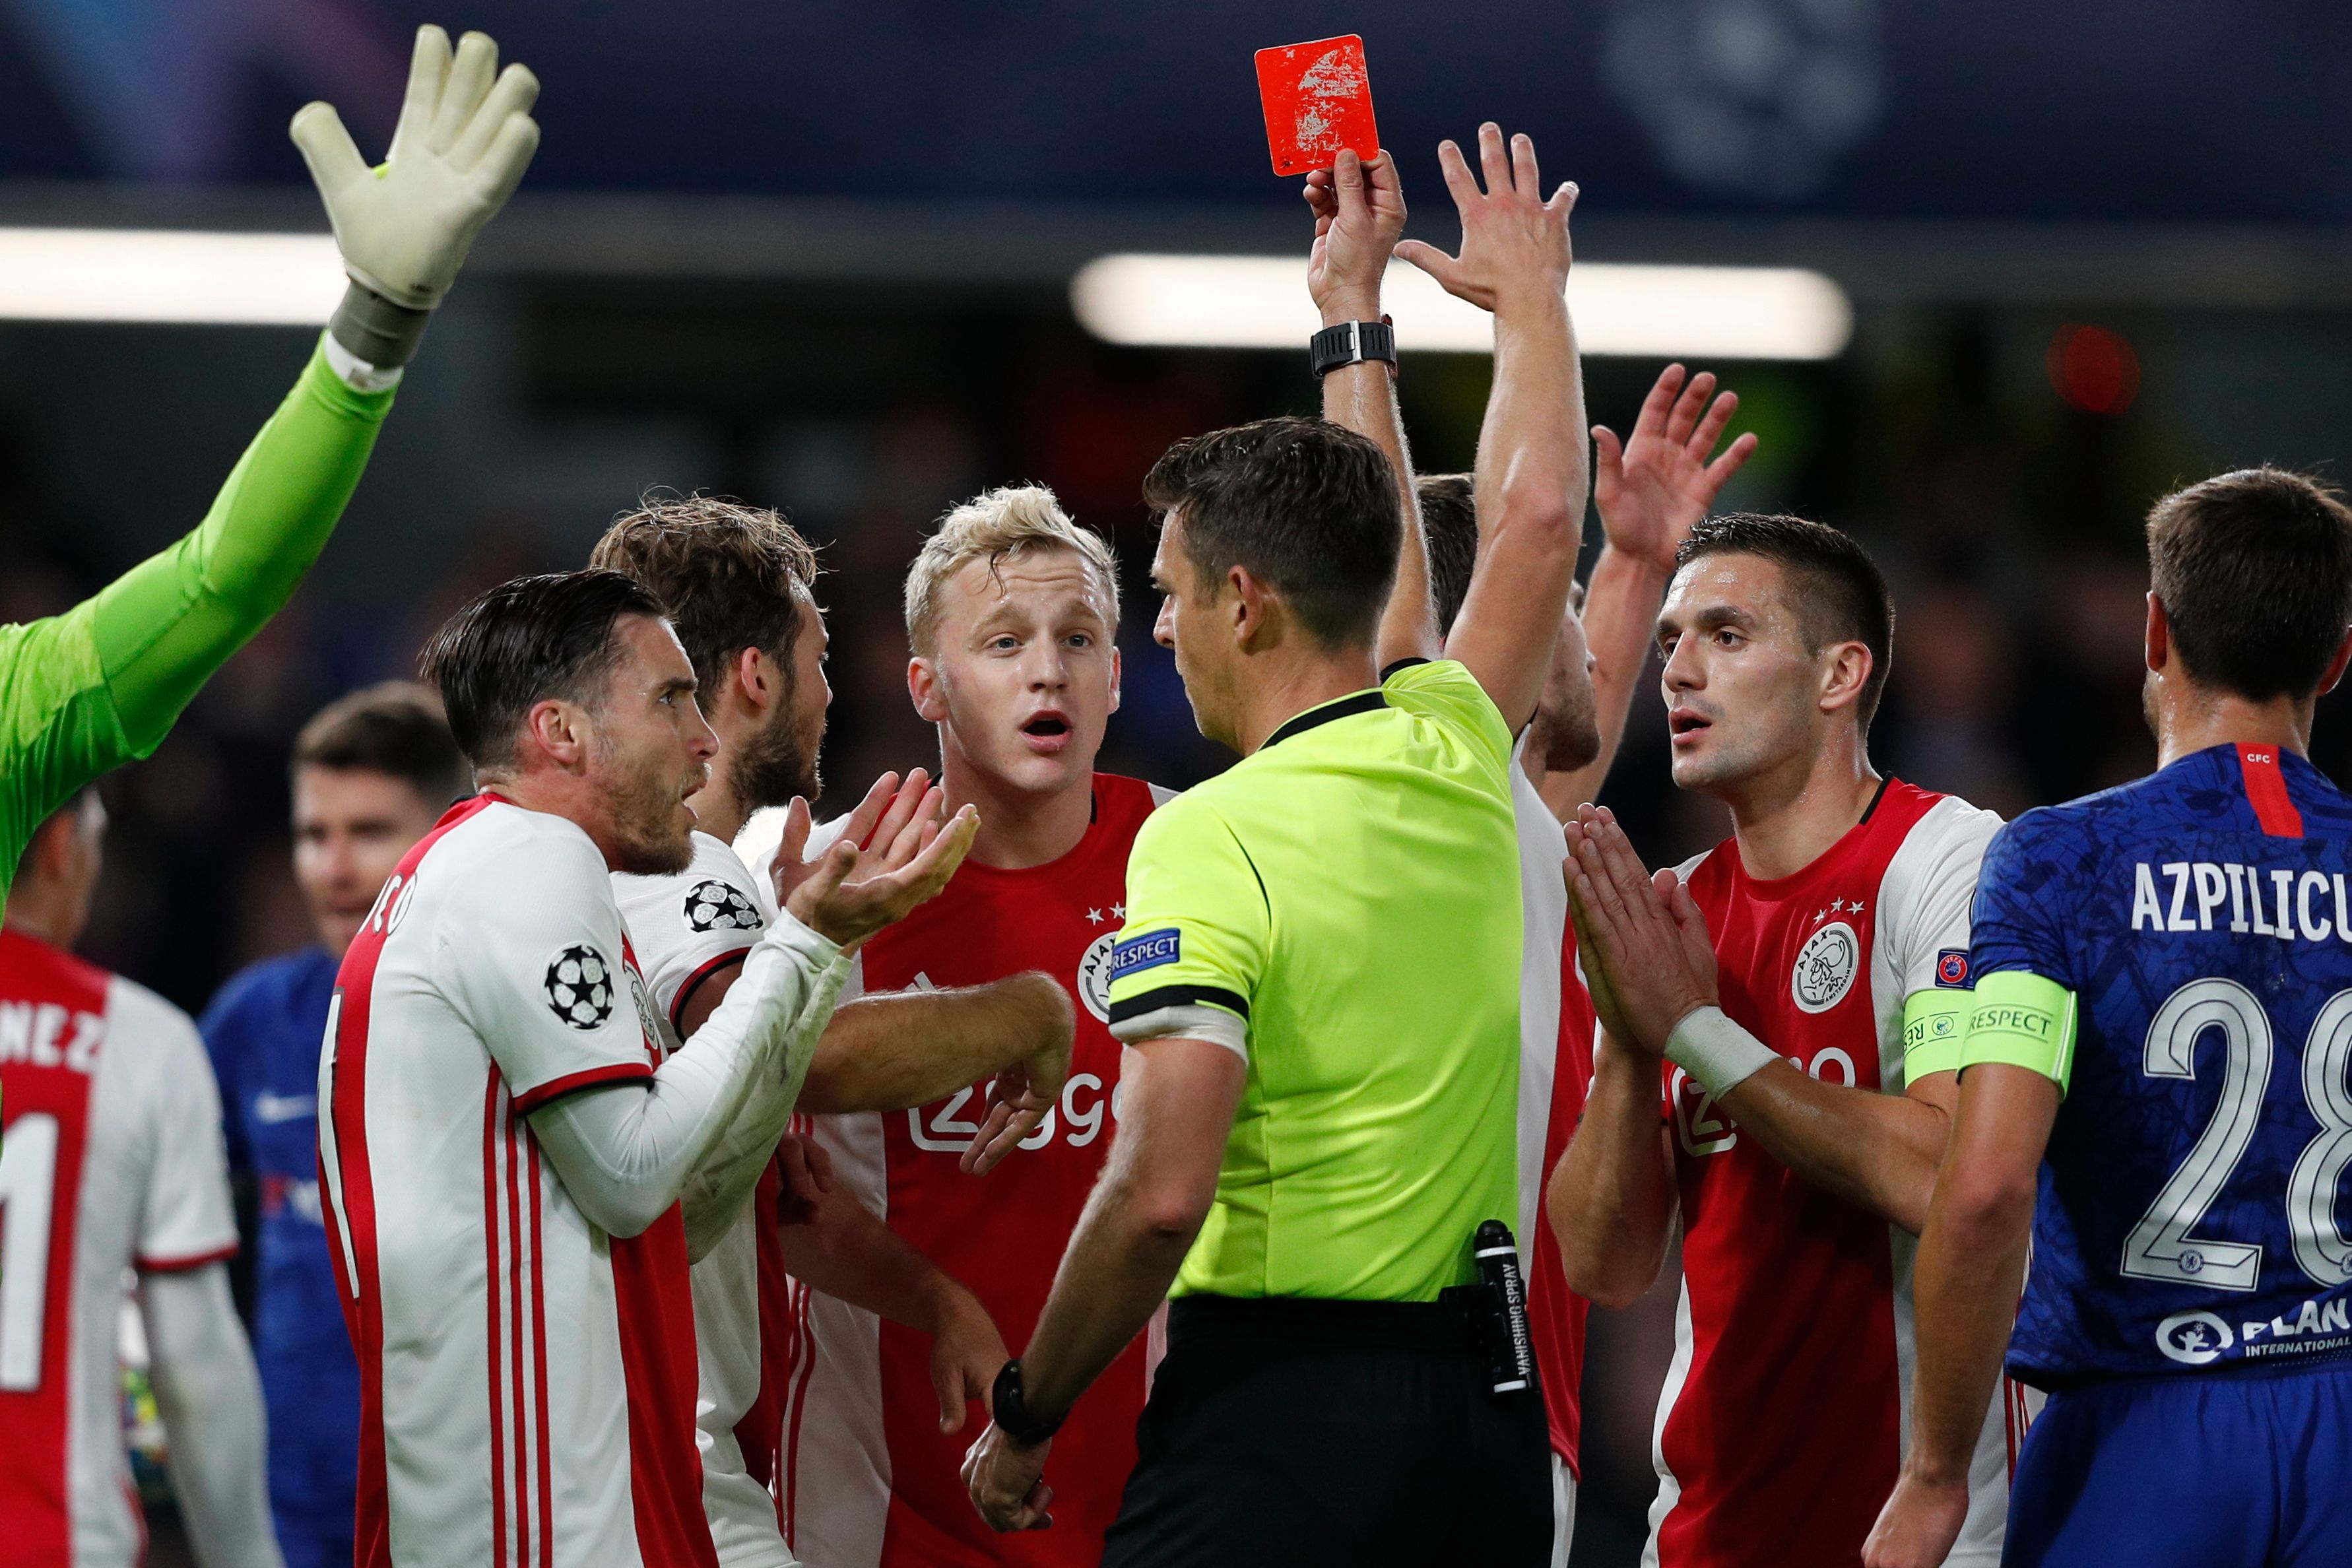 Ajax's players react after its defender Joel Veltman (C) is shown a red card by Italian referee Gianluca Rocchi.